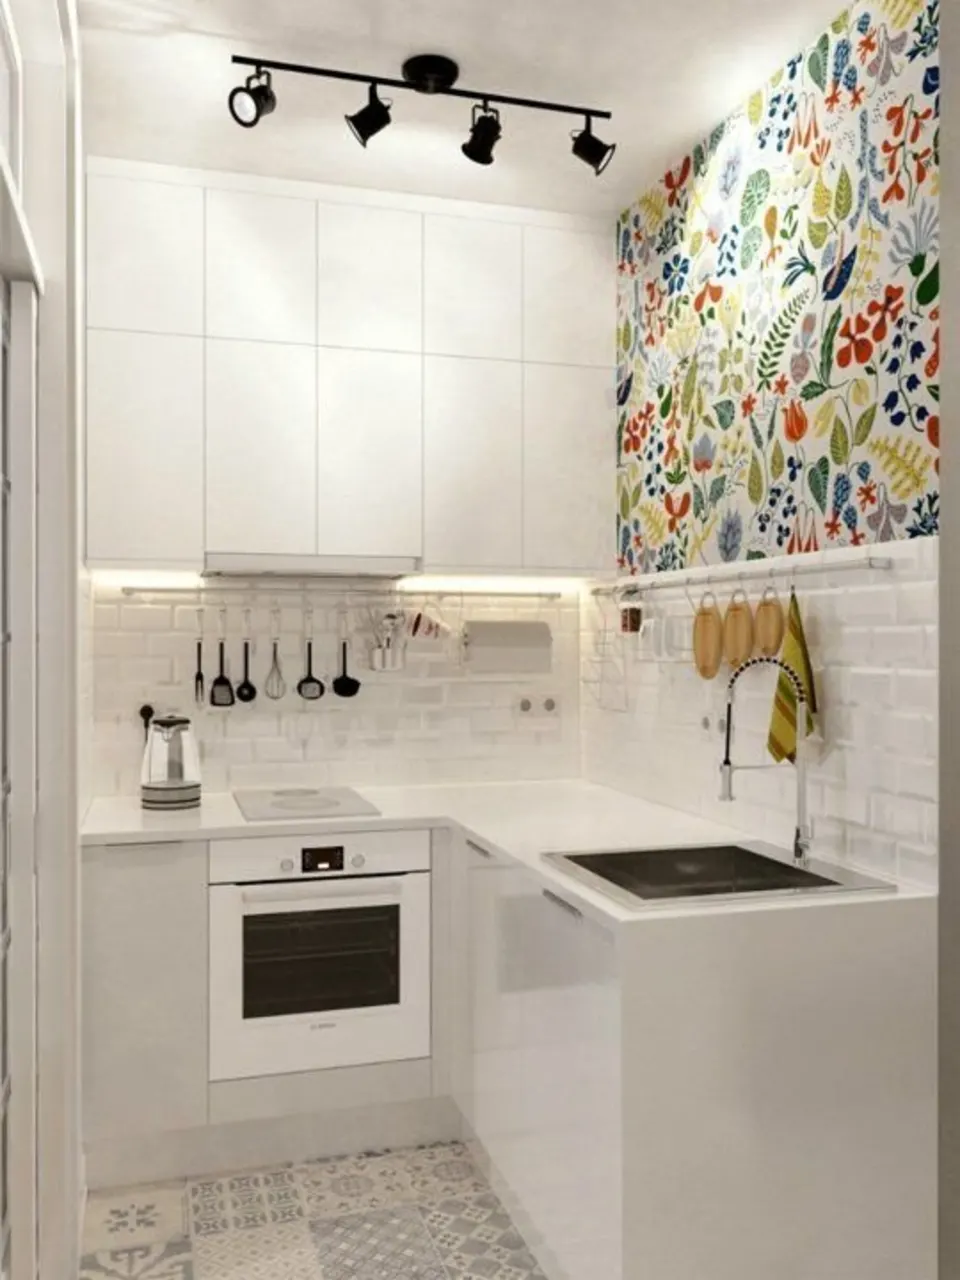 Wonderful Wallpaper In Small Spaces Small Apartment Kitchen Decor Small Kitchen Decor Kitchen Remodel Small